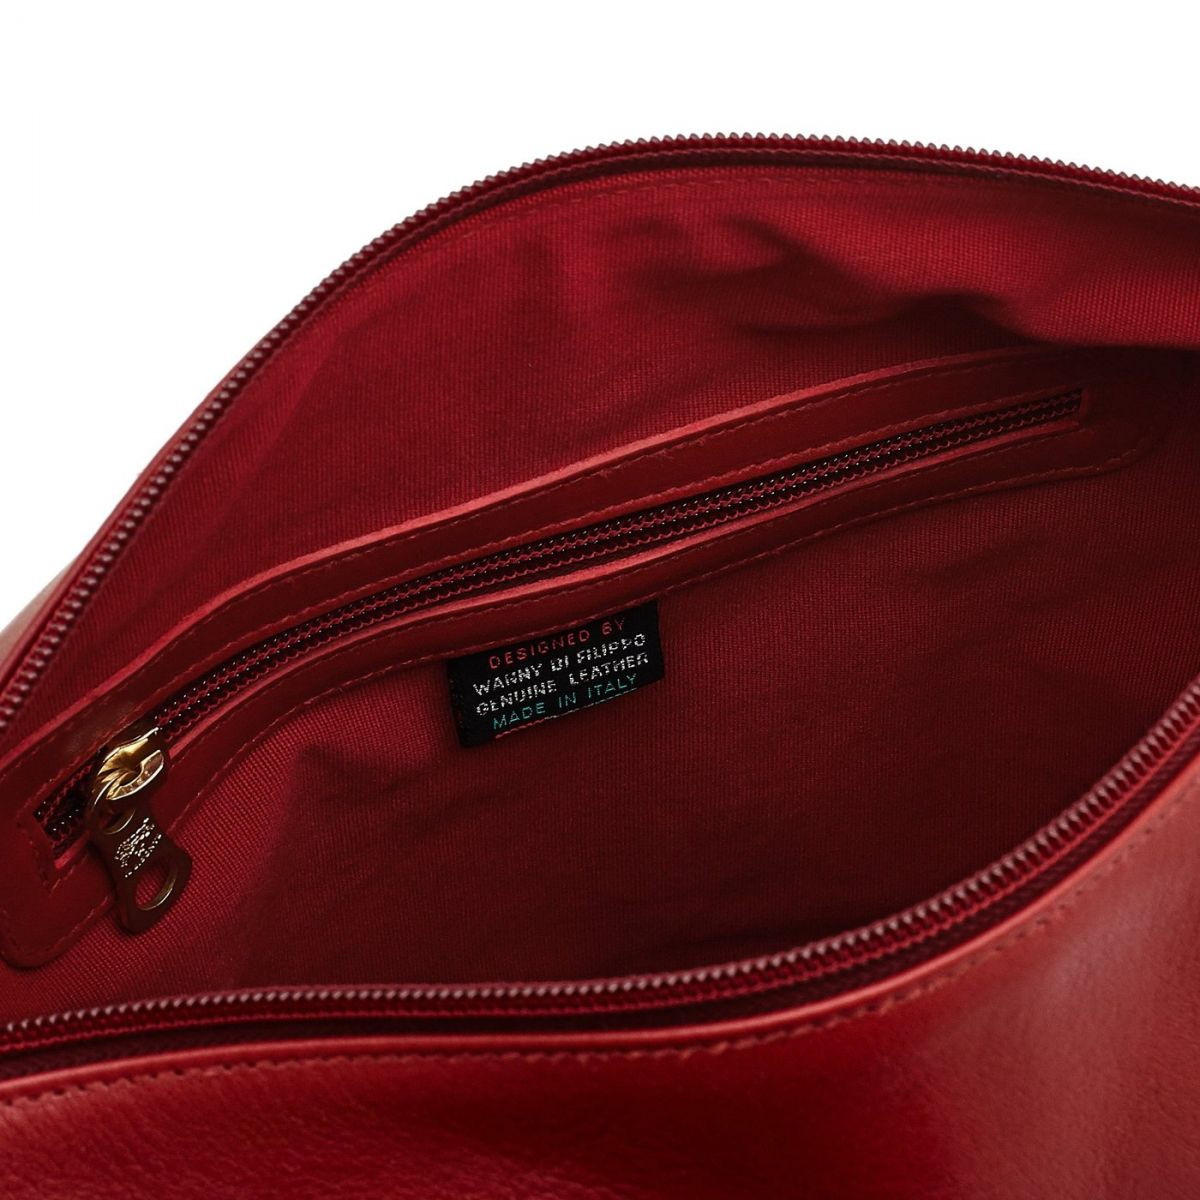 Women's Shoulder Bag in Cowhide Double Leather BSH004 color Red | Details